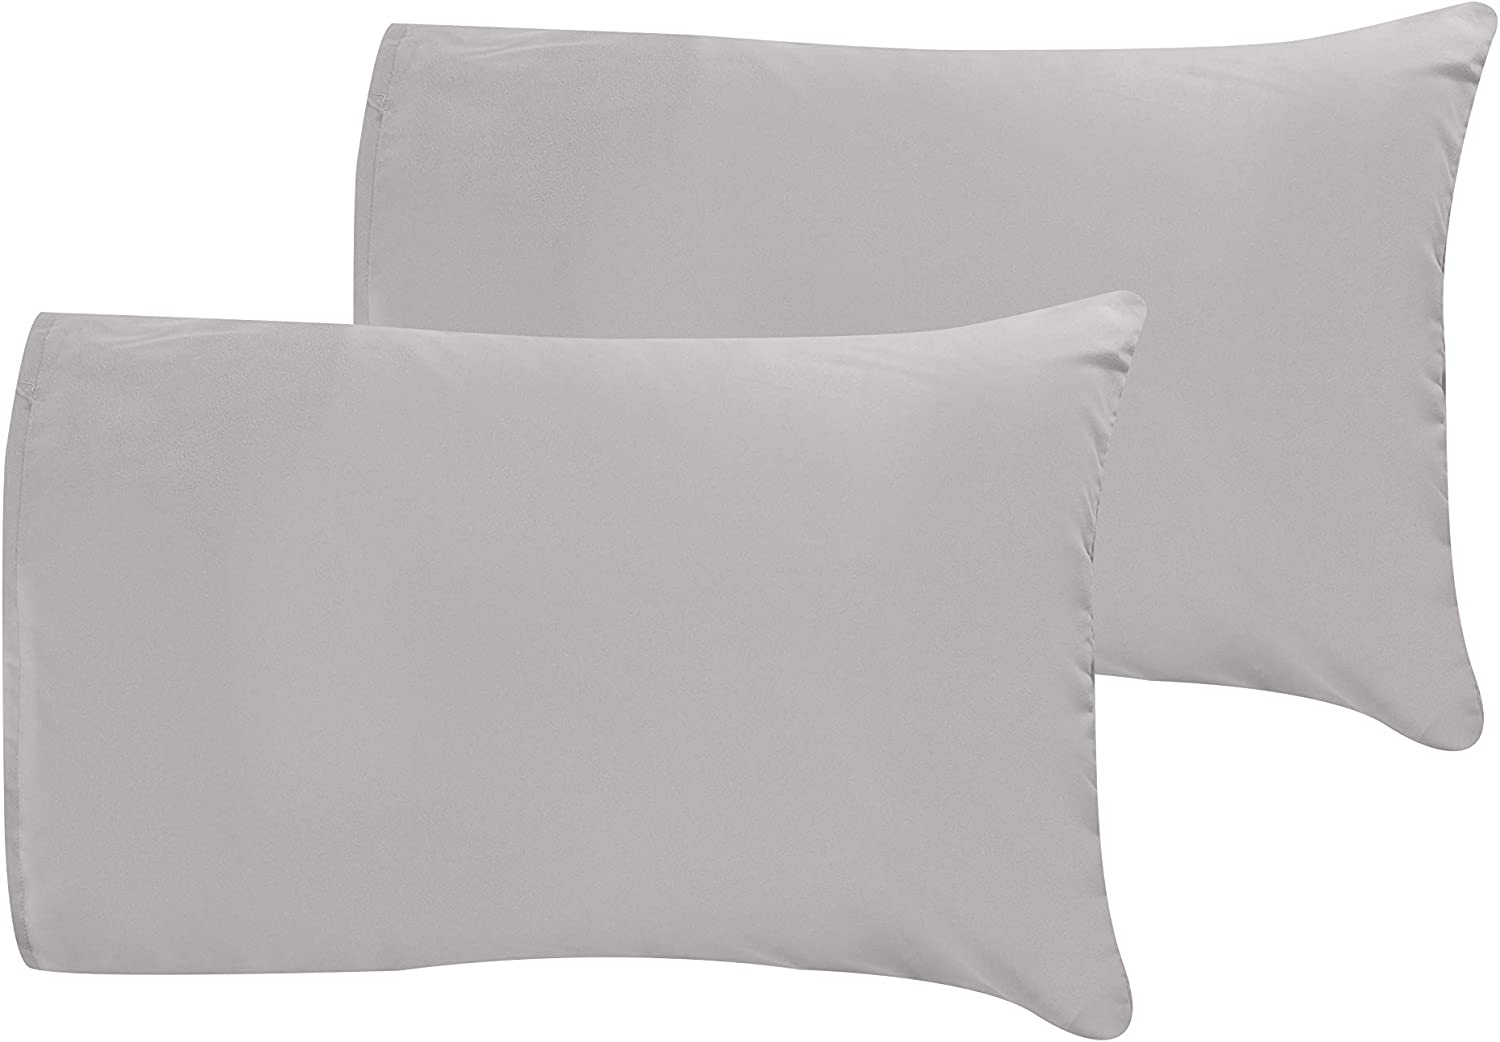 Breathable and Hypoallergenic Pillowcase Set EVERYDAY KIDS Space 2 Pack Pillowcase Set Soft Microfiber